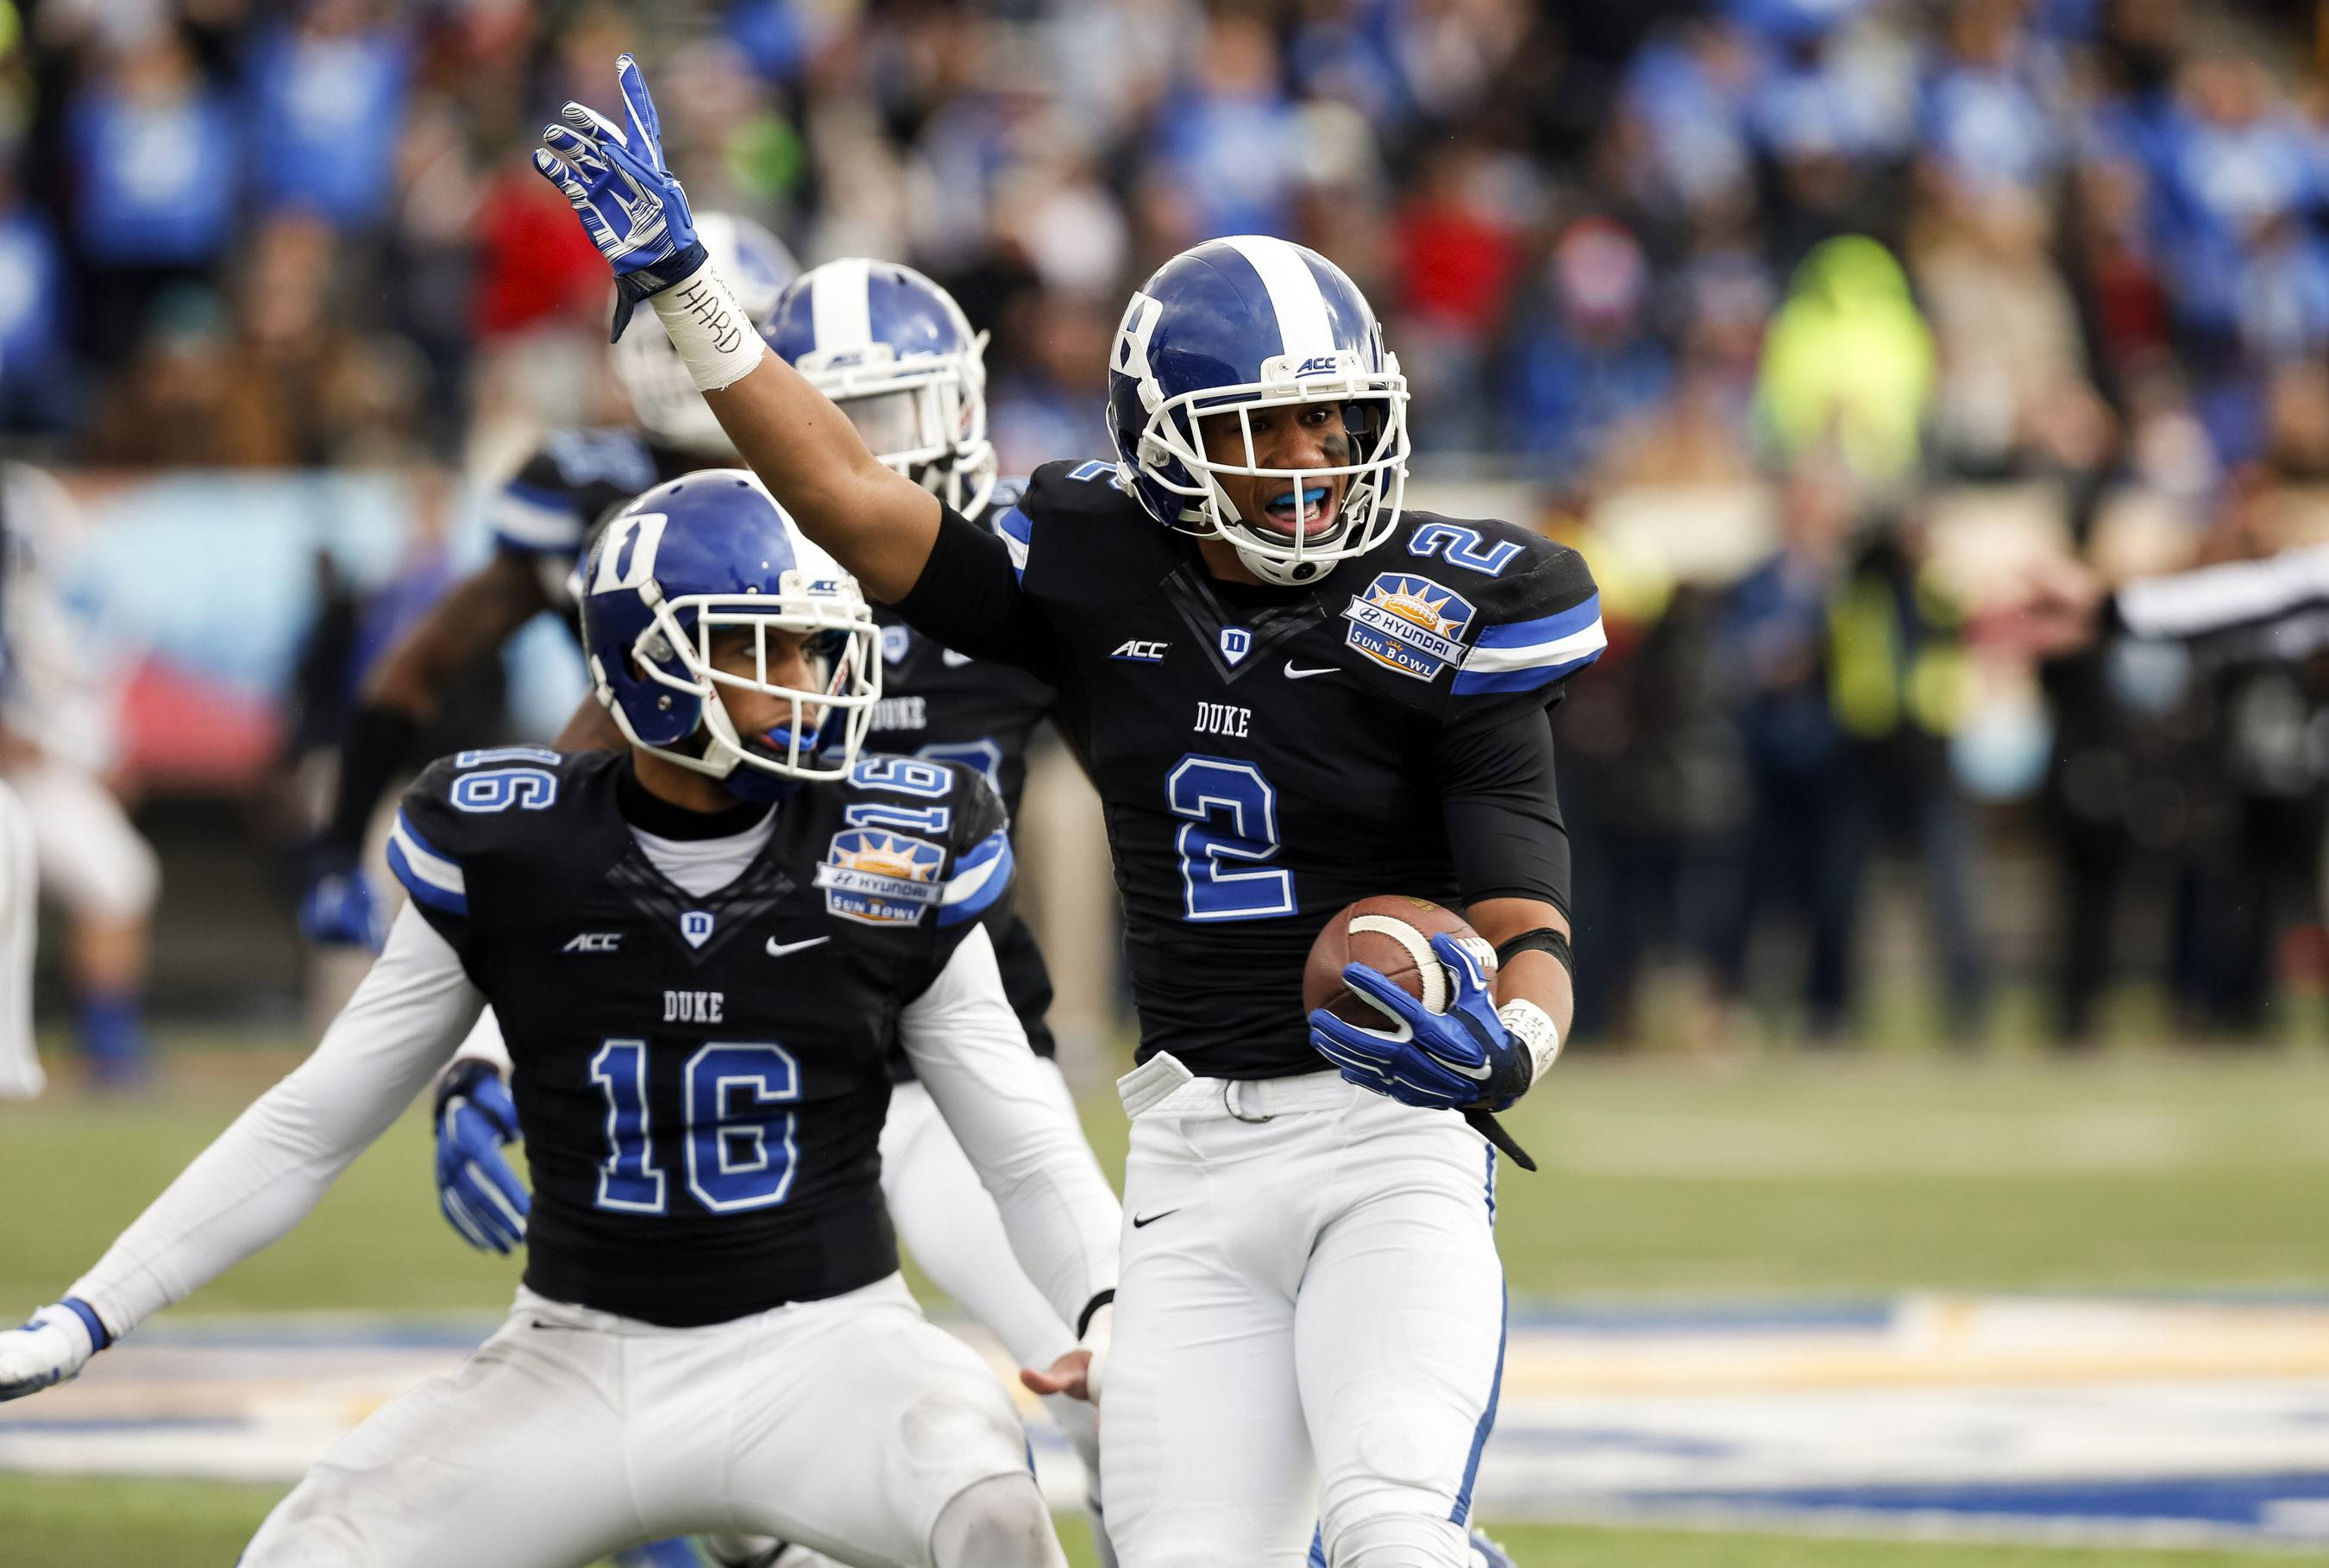 Dec 27, 2014; El Paso, TX, USA; Duke Blue Devils safety Evrett Edwards (2) celebrates after an interception against the Arizona State Sun Devils in the 2014 Sun Bowl at Sun Bowl Stadium. The interception was overturned after a replay review. Mandatory Credit: Ivan Pierre Aguirre-USA TODAY Sports